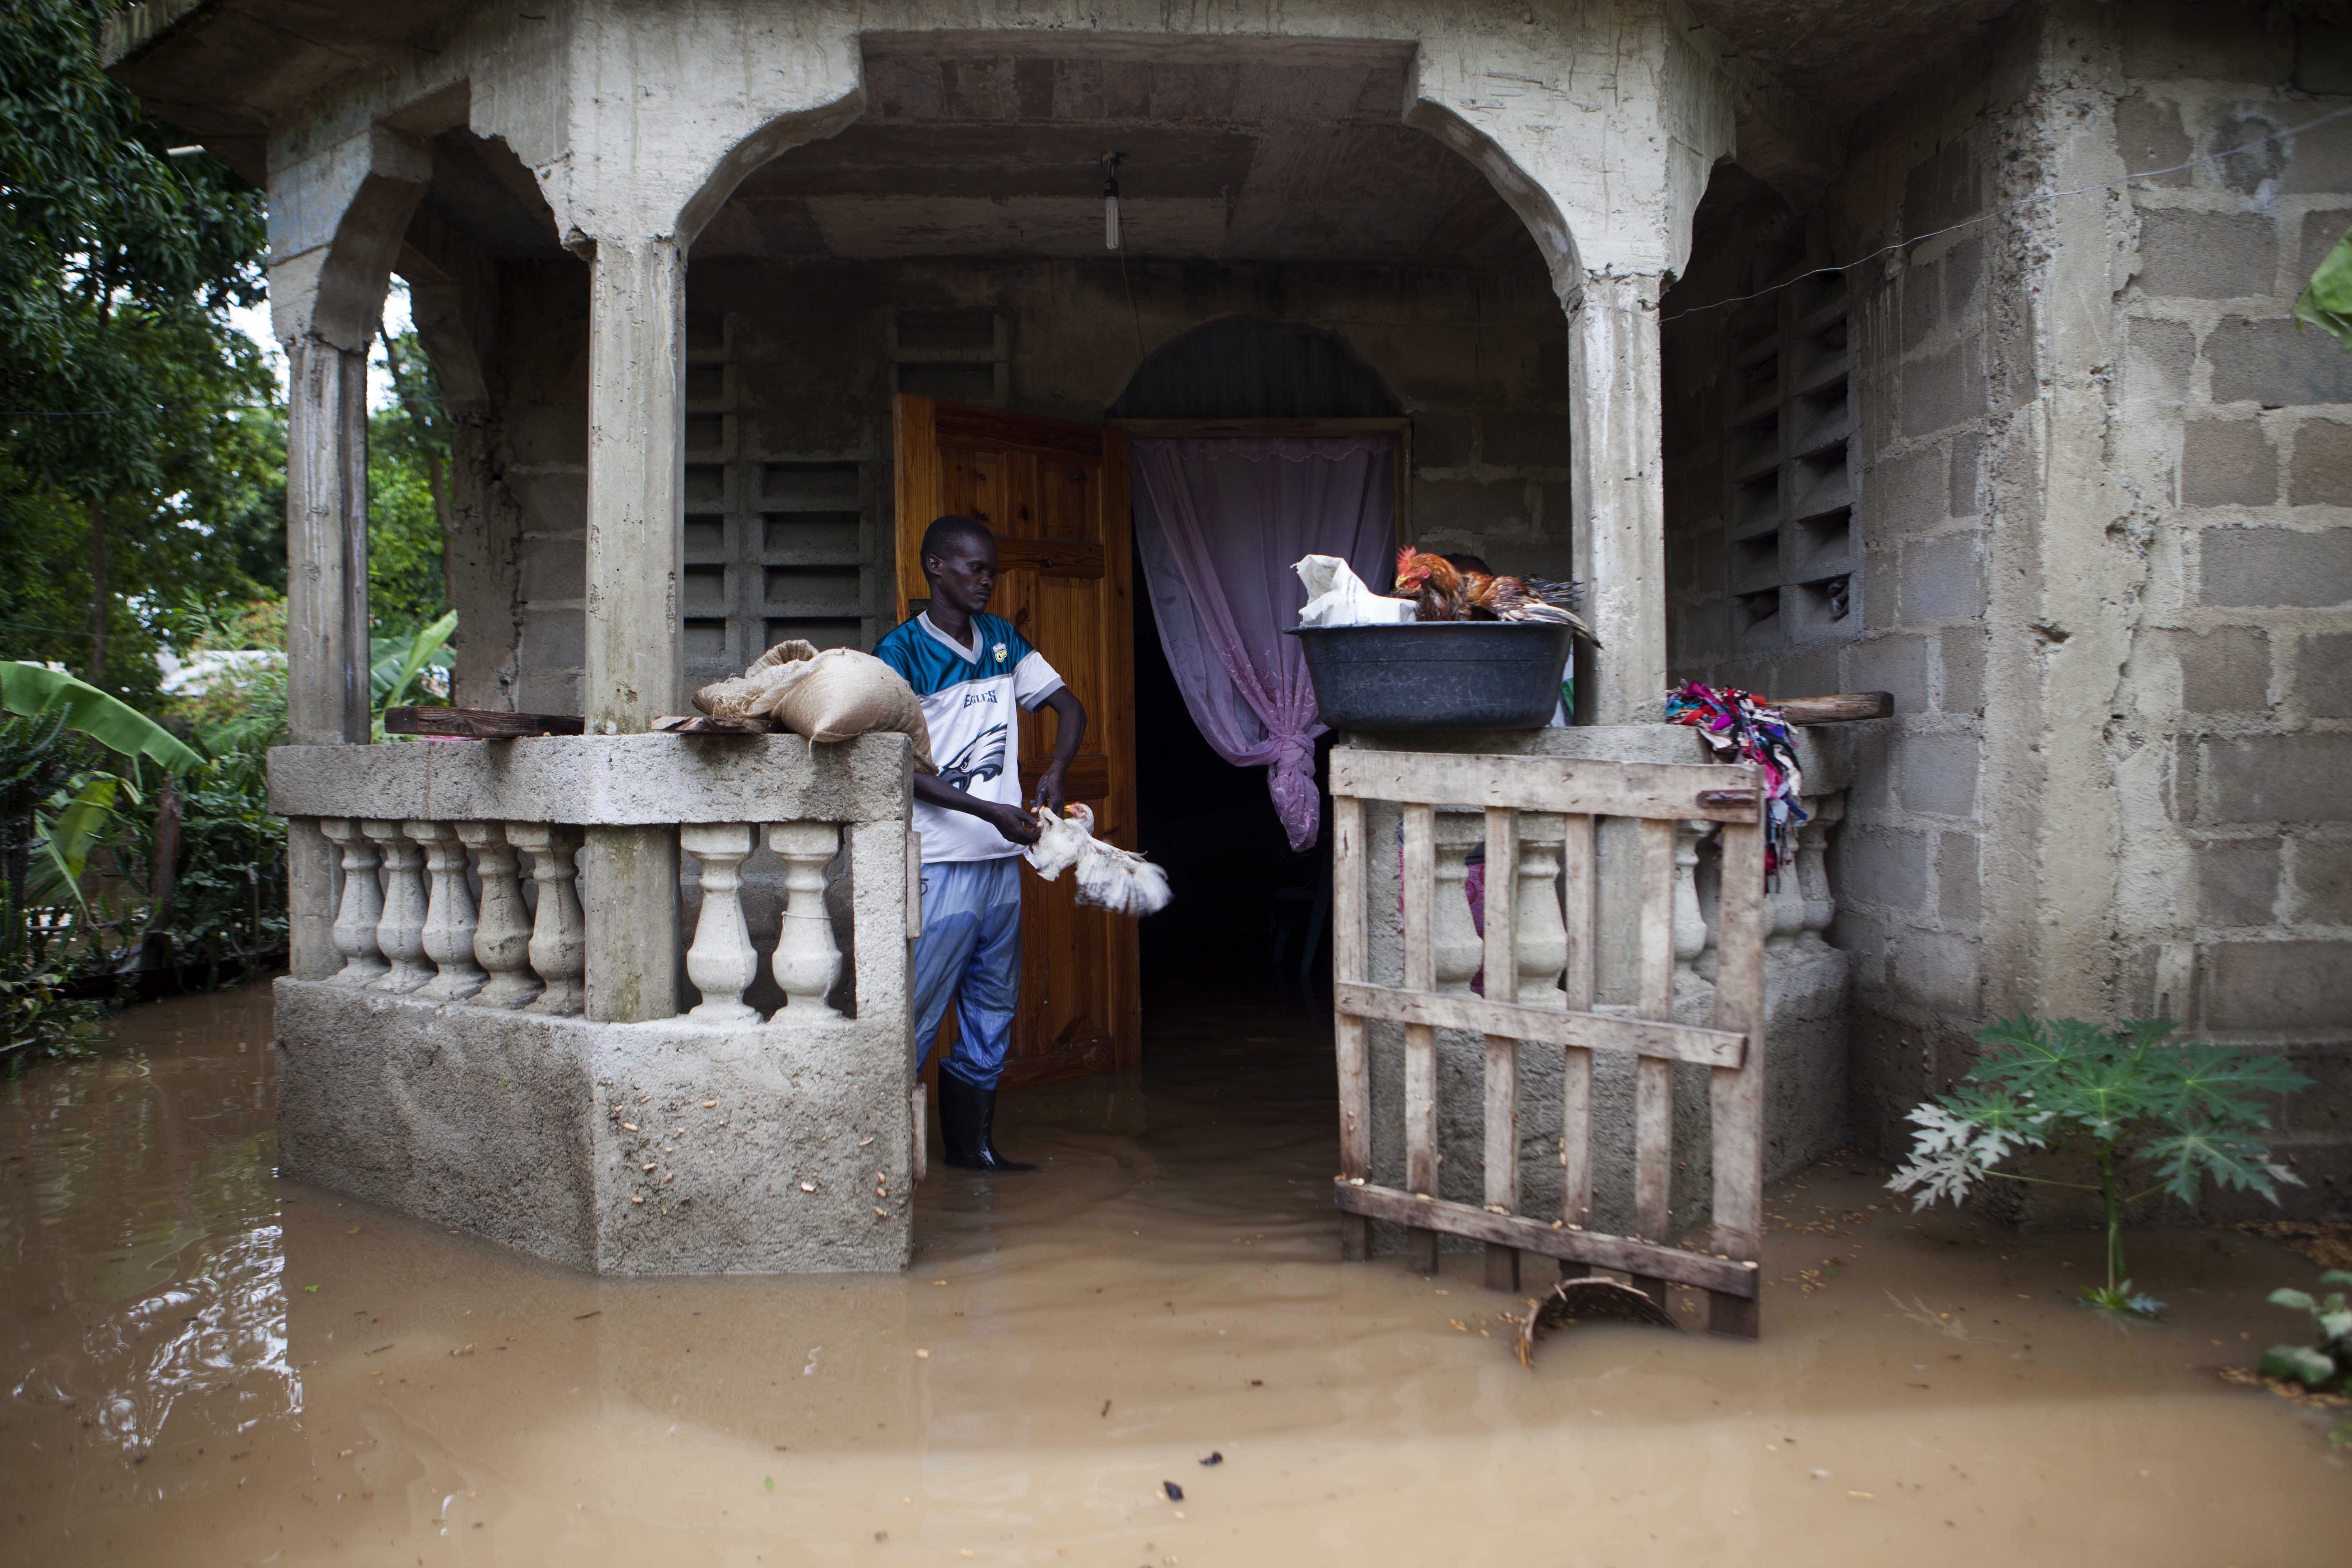 "<div class=""meta image-caption""><div class=""origin-logo origin-image none""><span>none</span></div><span class=""caption-text"">A man salvages items from his home flooded by heavy rains brought on by Hurricane Irma, in Fort-Liberte, Haiti, Friday Sept. 8, 2017. (Dieu Nalio Chery/AP Photo)</span></div>"